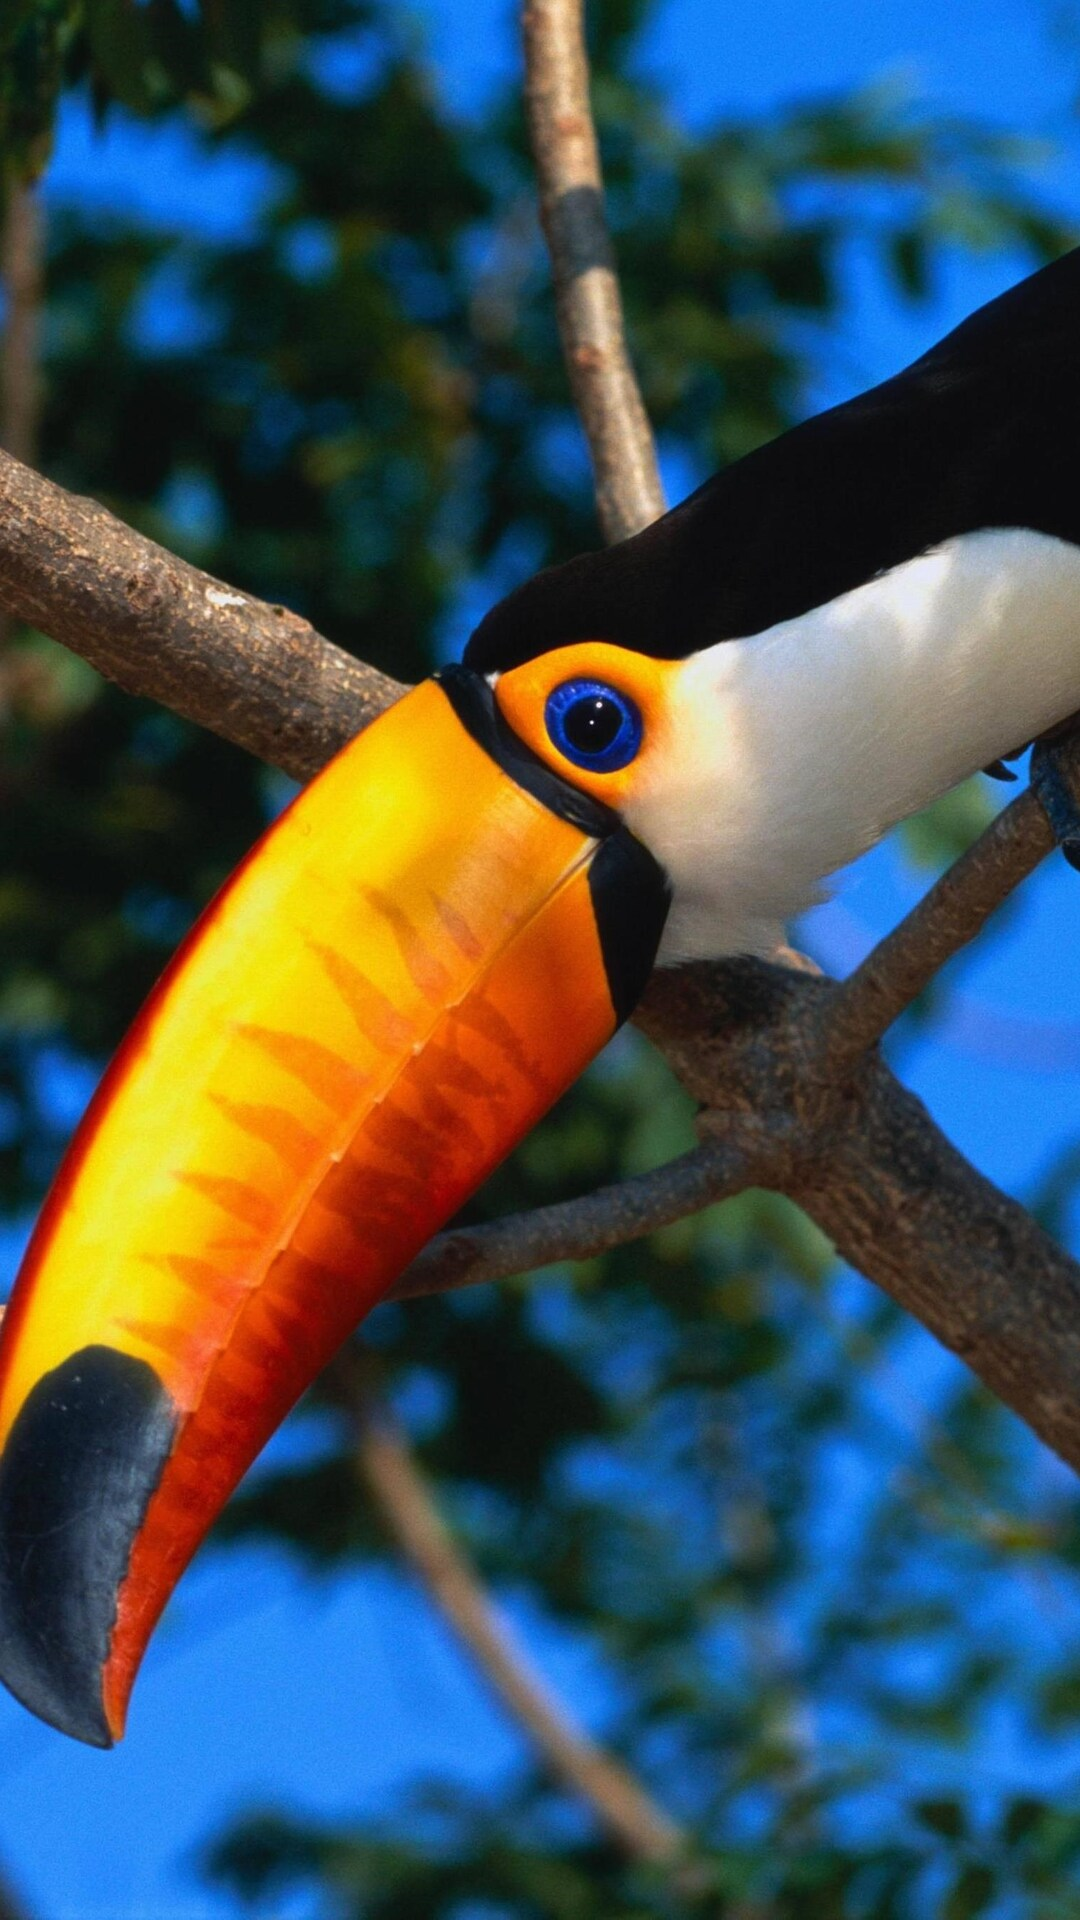 toucans-wildlife-birds-wallpaper.jpg